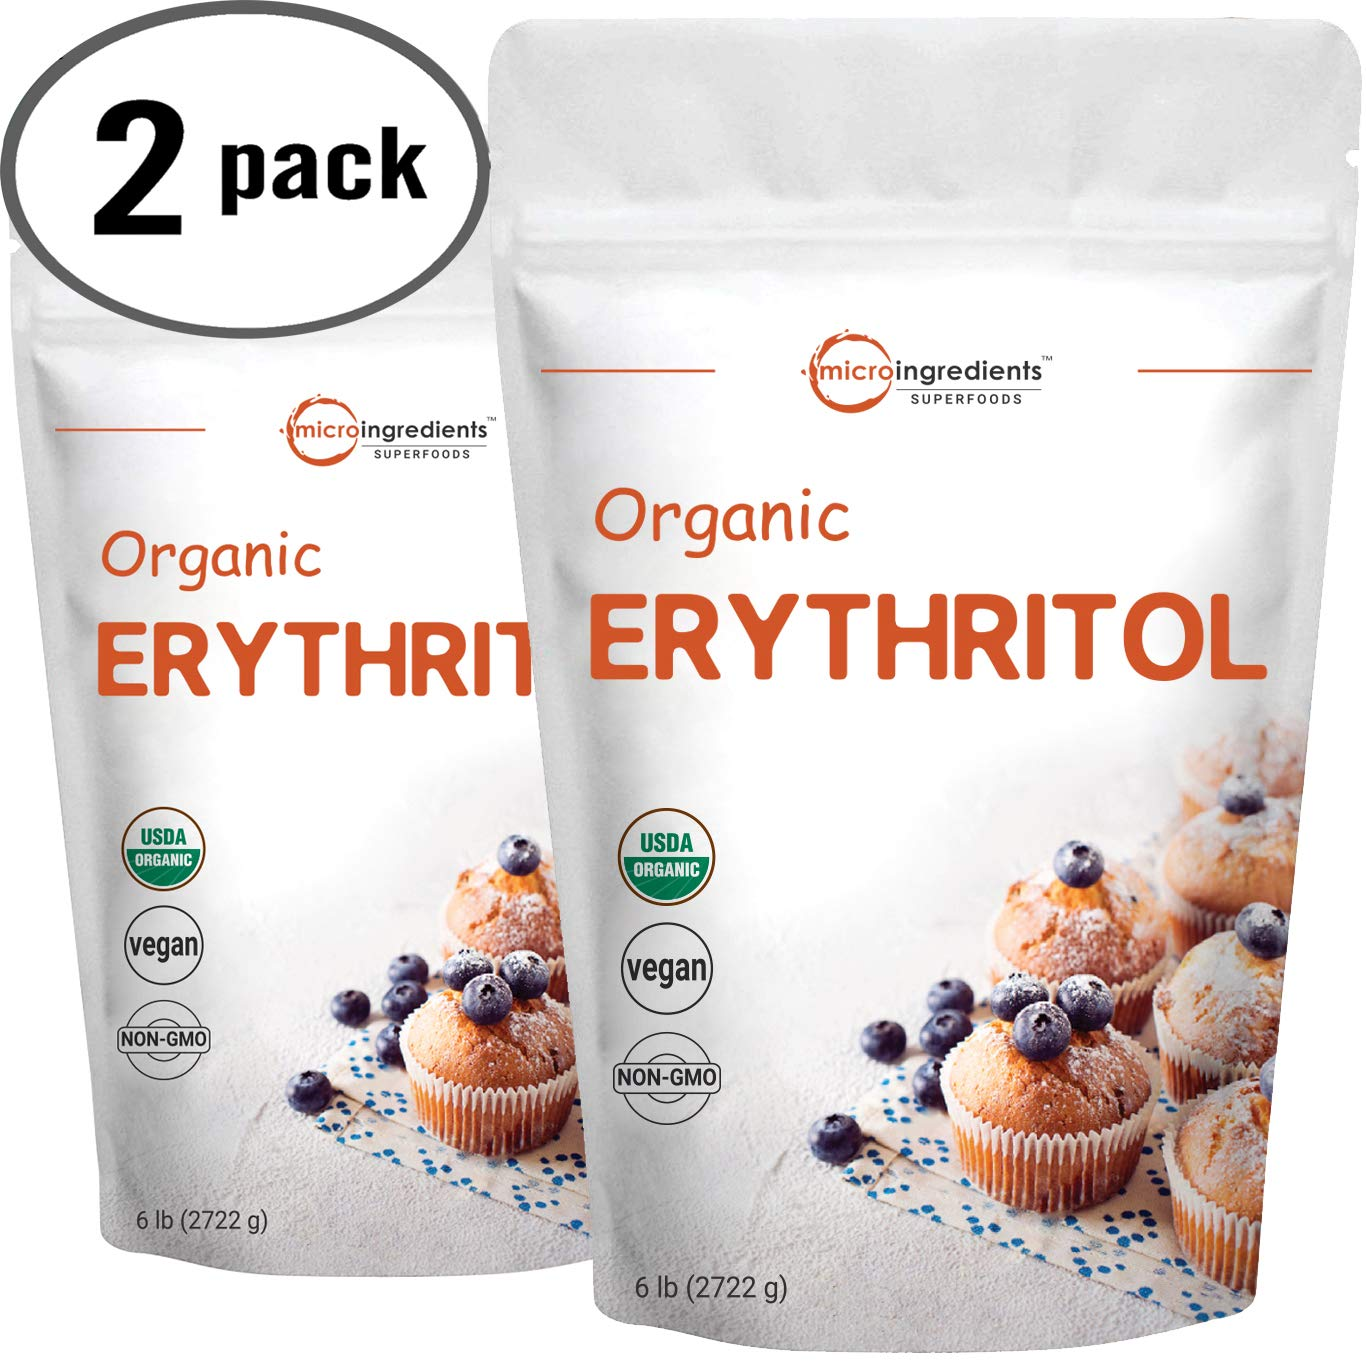 Micro Ingredients Organic Erythritol Granular, 6 Pounds, No Calorie, Sugar Substitute, Natural Sweetener, Non-GMO and Vegan Friendly 2 Pack